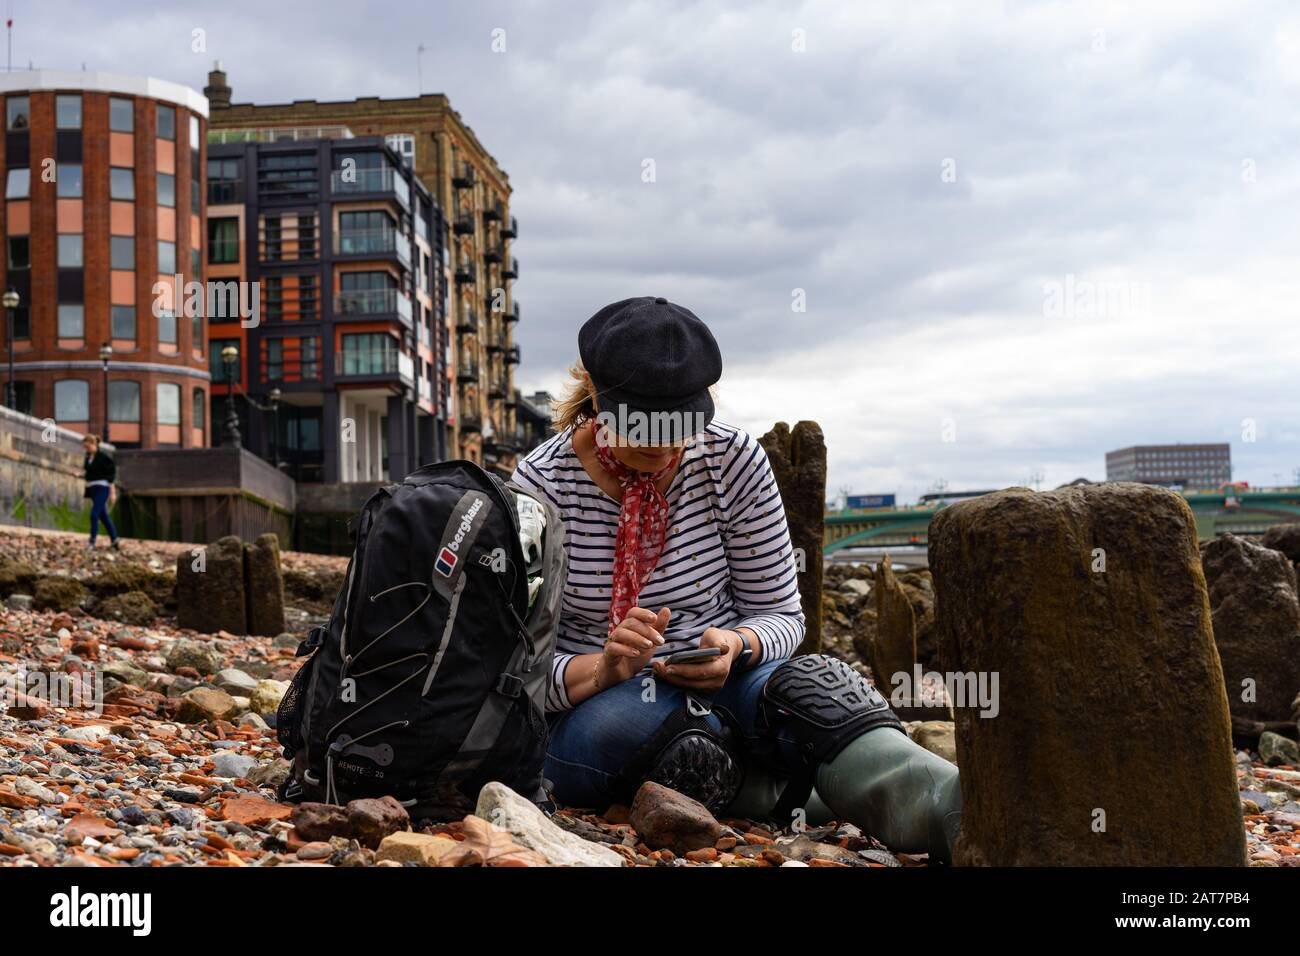 Mud-larker on the river Thames foreshore at low tide, London. Stock Photo